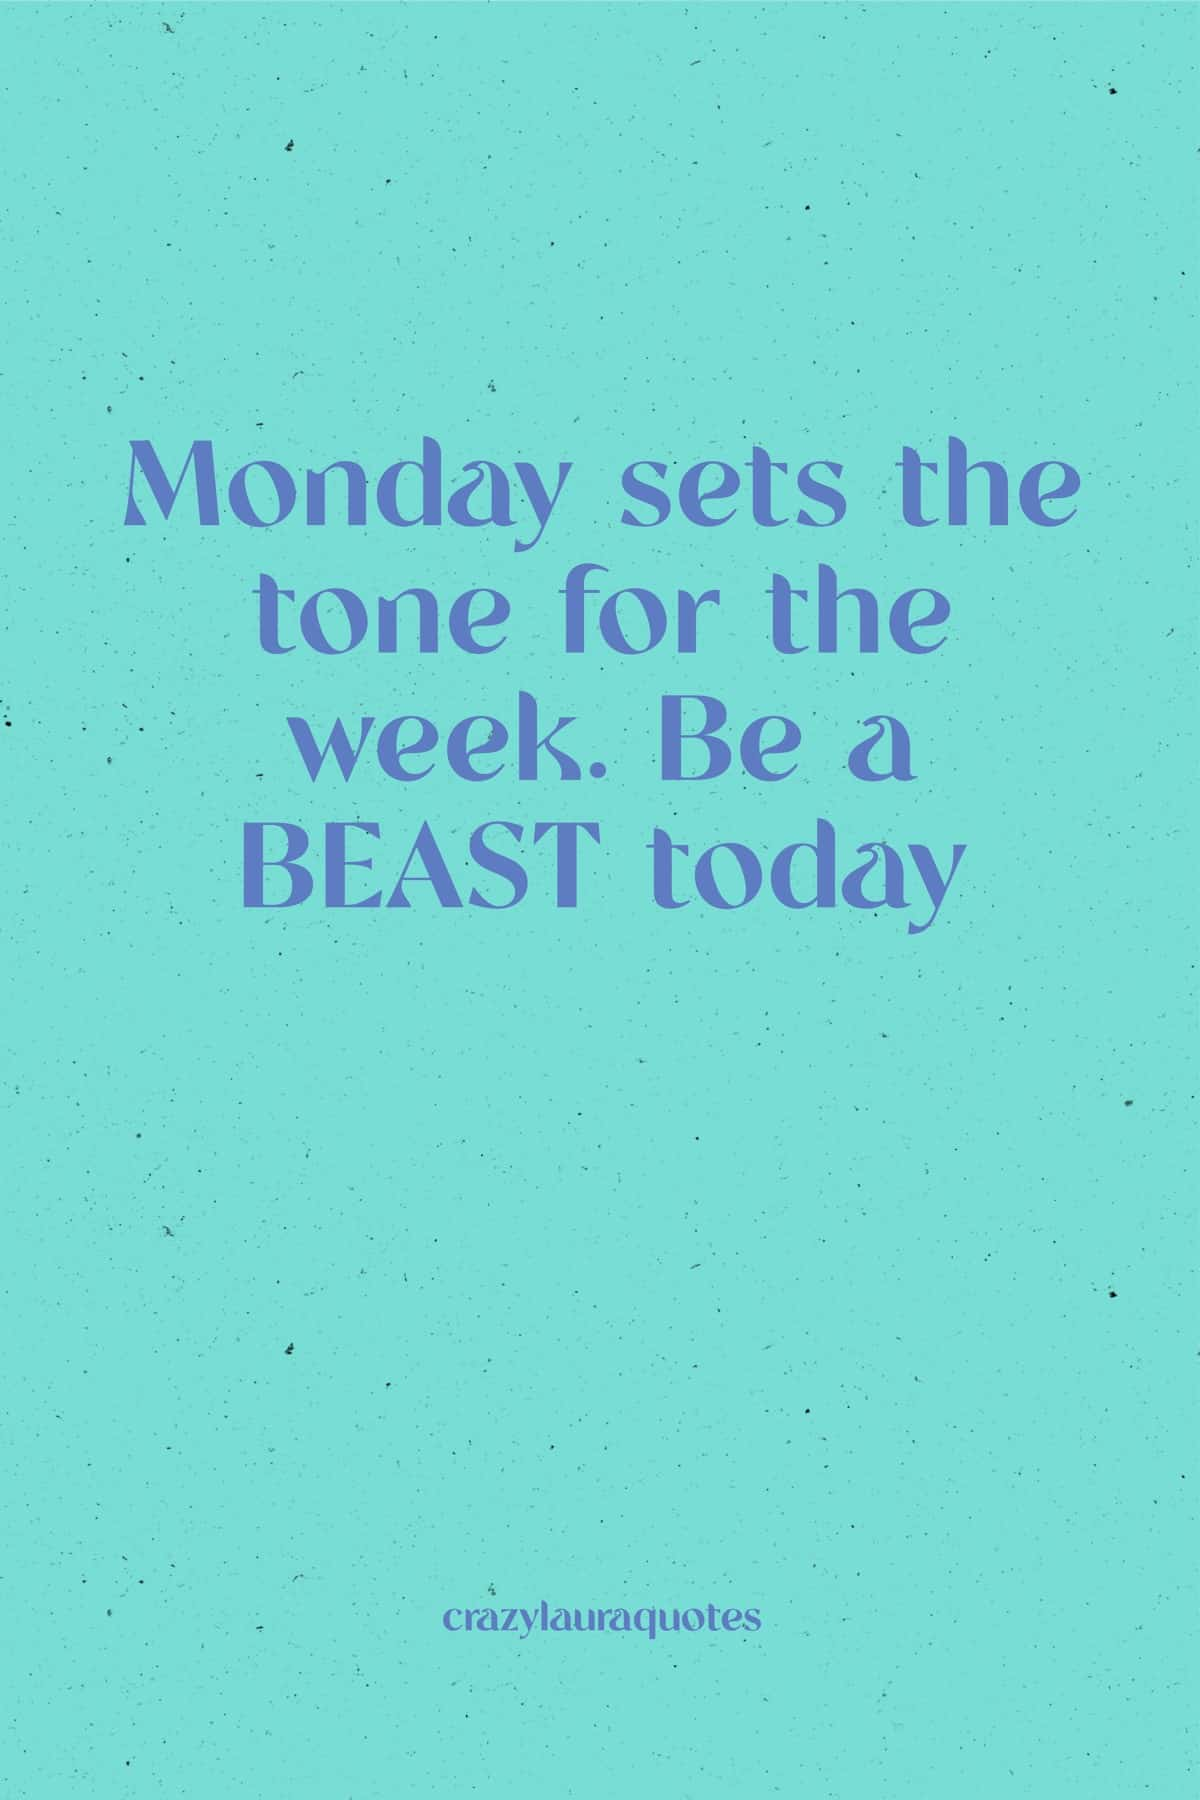 be a beast motivational quote for monday